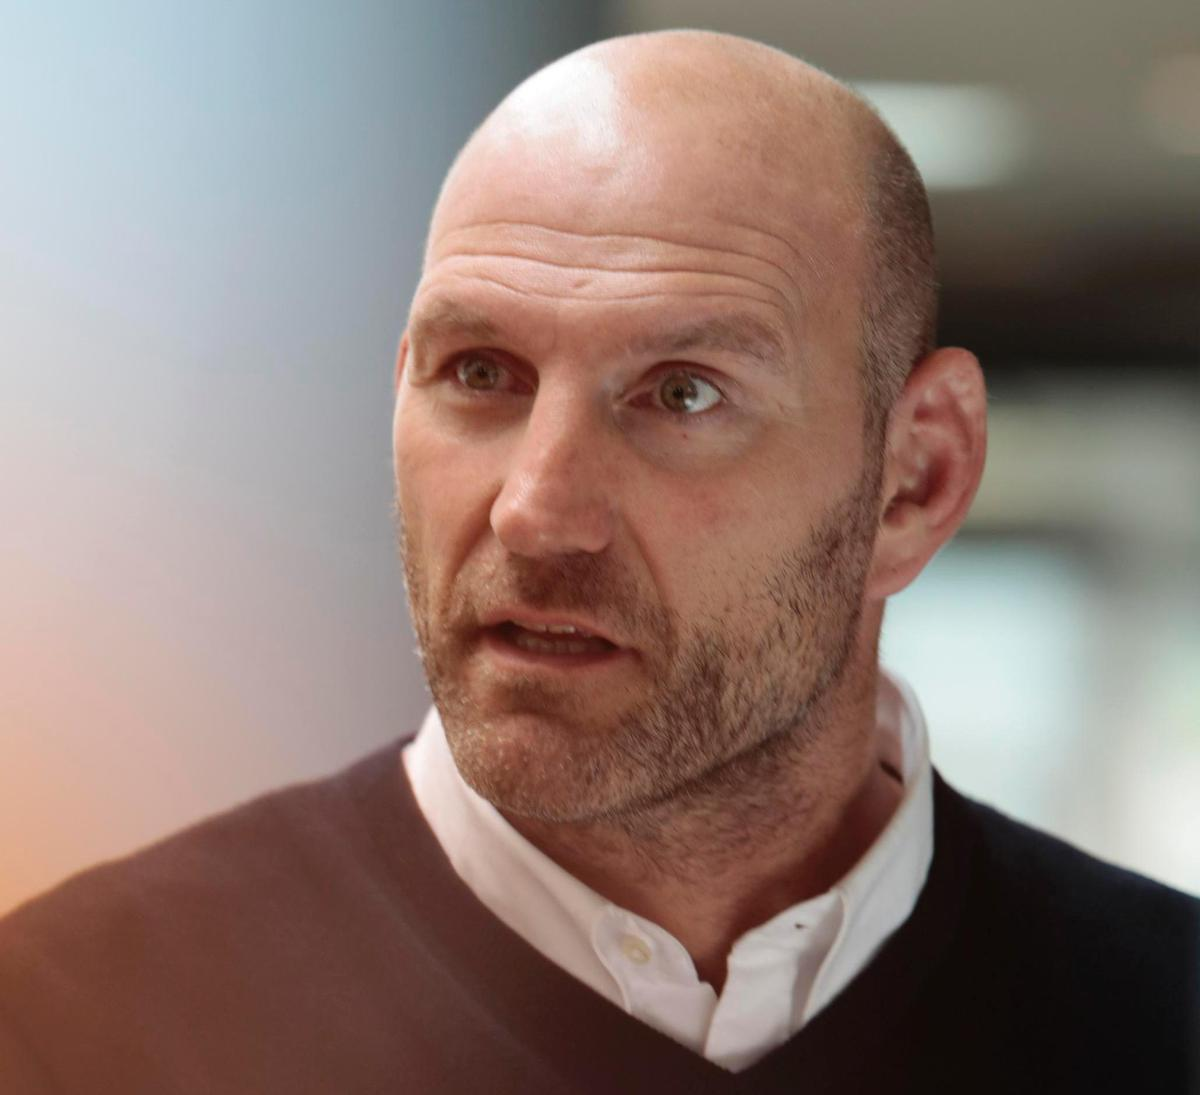 Lawrence Dallaglio called on the health and fitness industry to come up with a major campaign to boost activity among young people, but said government had to act now on education